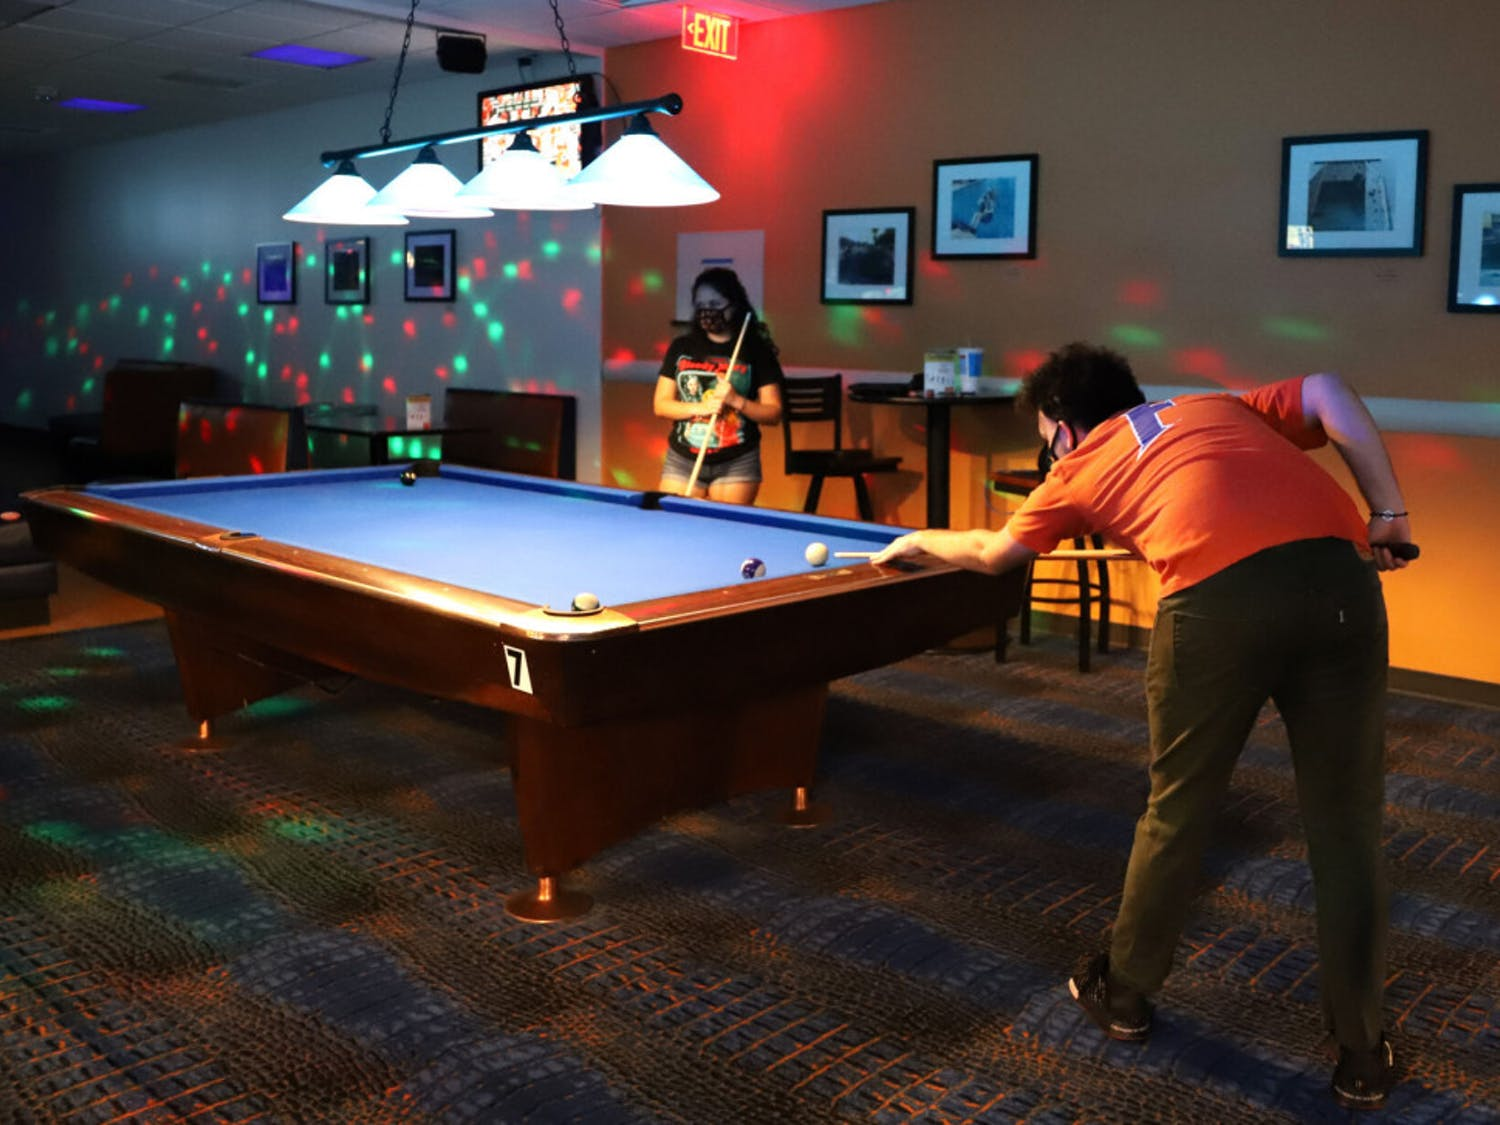 Max Slabbinck (right), 22, a senior media and society student, and Averi Hemingway, 21, a recent telecommunication graduate, shoot pool at the Reitz Union Game Room on Oct. 10, 2020. To ensure social distancing, the two pool tables nearest to Slabbinck and Hemingway are covered and face masks are required at all times.